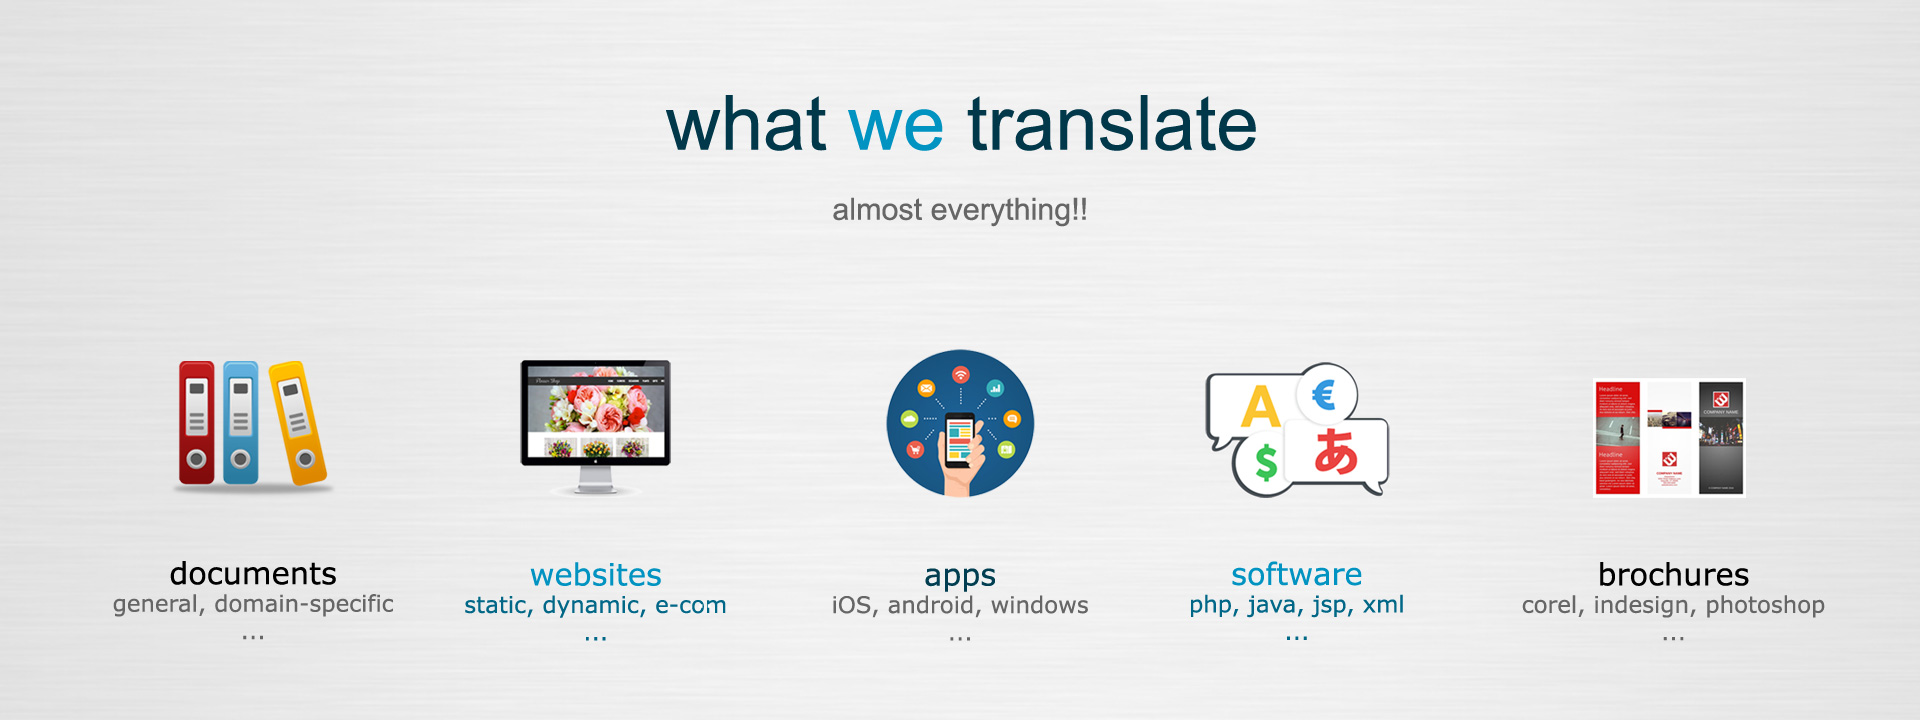 What We Translate